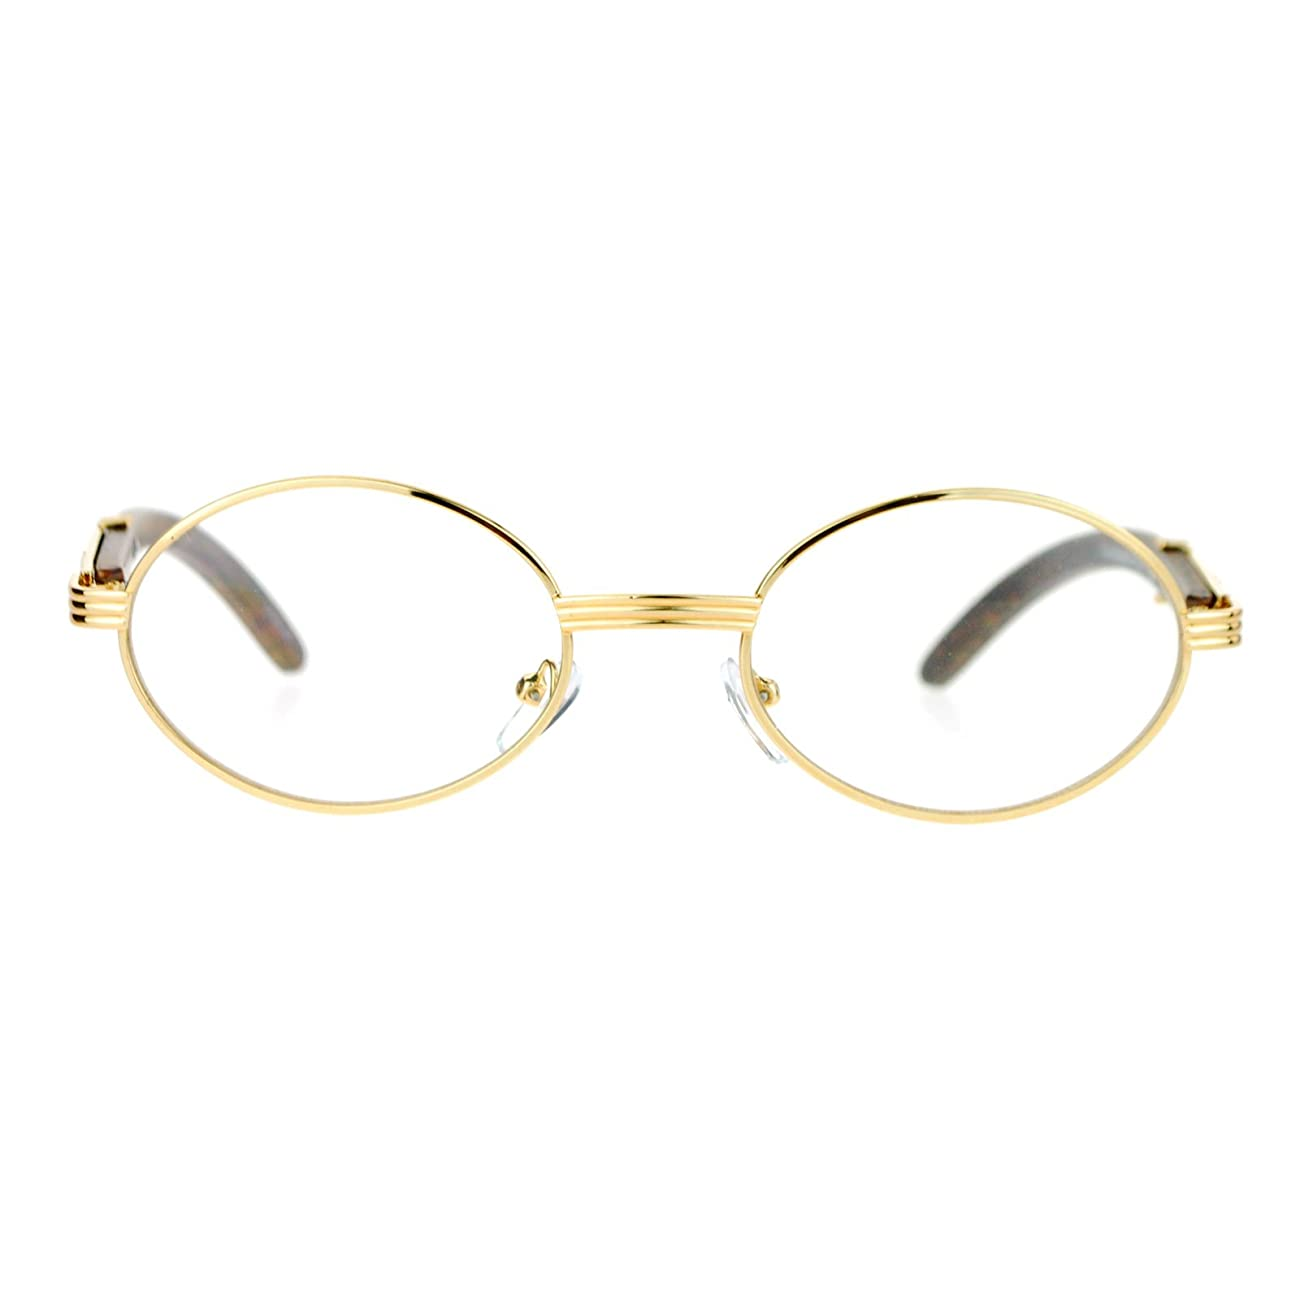 SA106 Art Nouveau Vintage Style Oval Metal Frame Eye Glasses 2